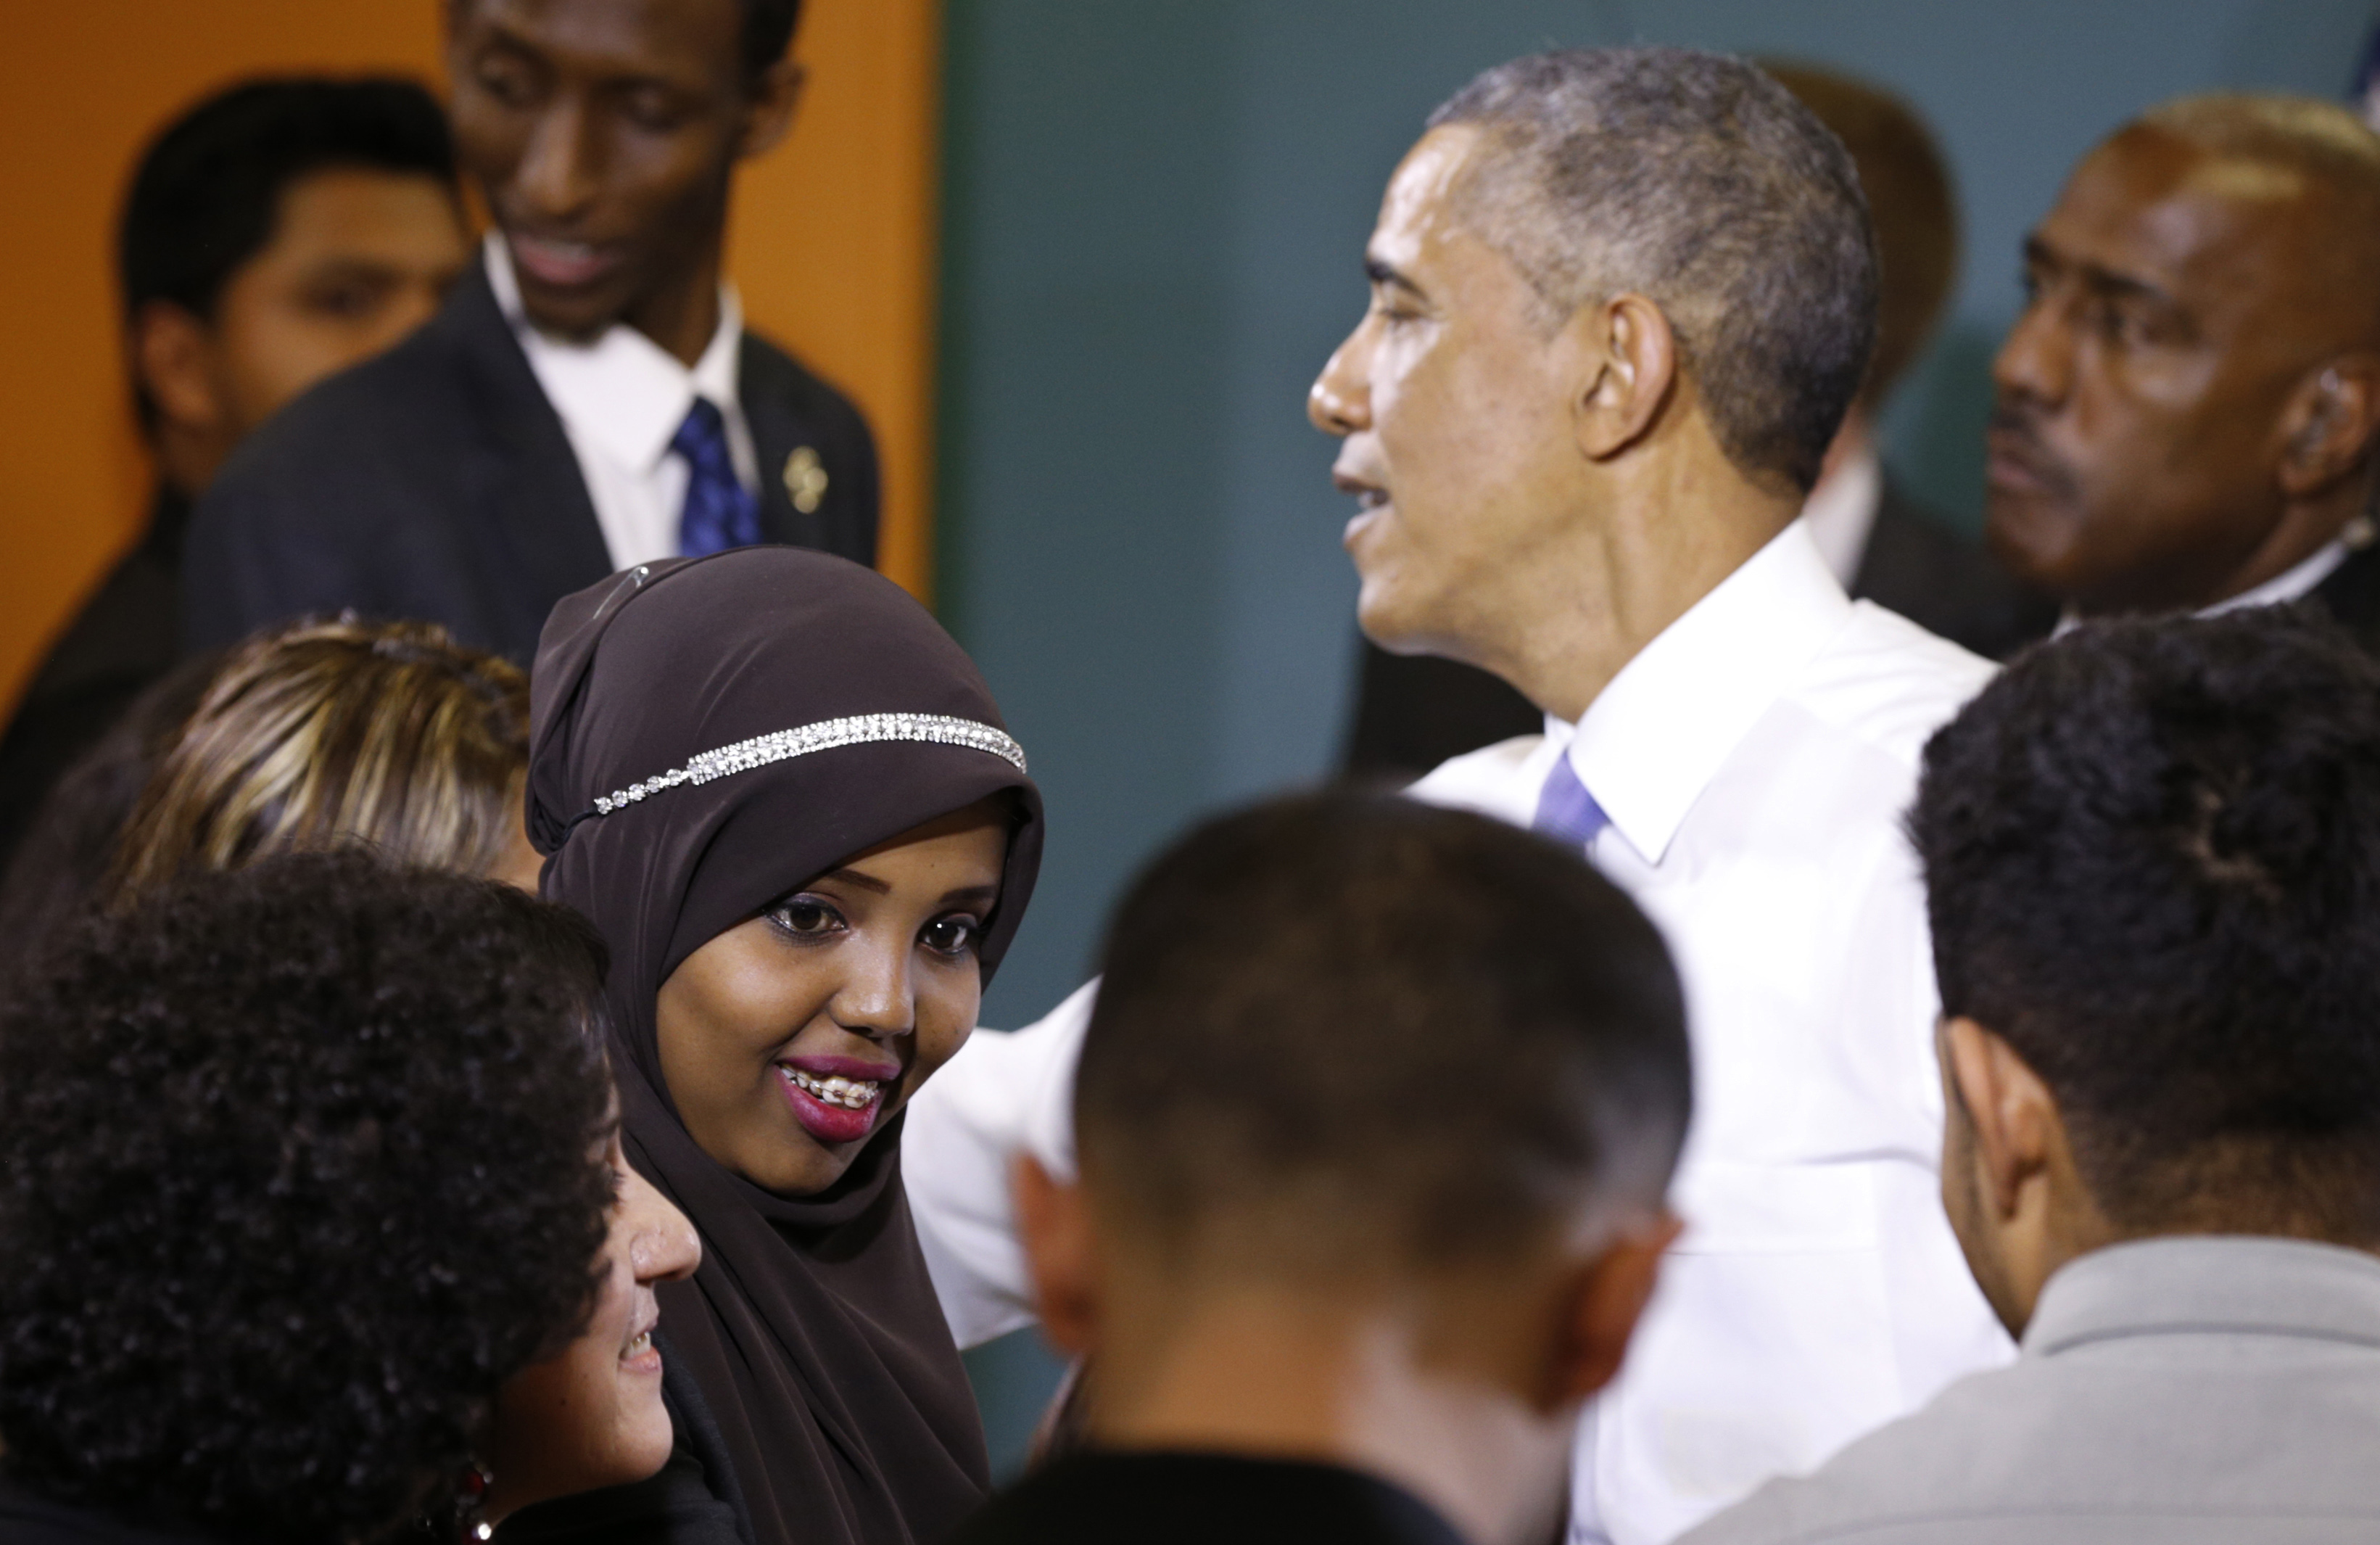 Hibo Omar, 17, a Nashville resident from Somalia, talks to her friends after greeting U.S. President Barack Obama (R) during his visit to Casa Azafran in Nashville, Tennessee December 9, 2014.  Obama visited Casa Azafran to speak about immigration reform. Casa Azafran is a community center and home to a number of immigrant-related nonprofits.  REUTERS/Kevin Lamarque  (UNITED STATES - Tags: POLITICS SOCIETY IMMIGRATION) - RTR4HCZN